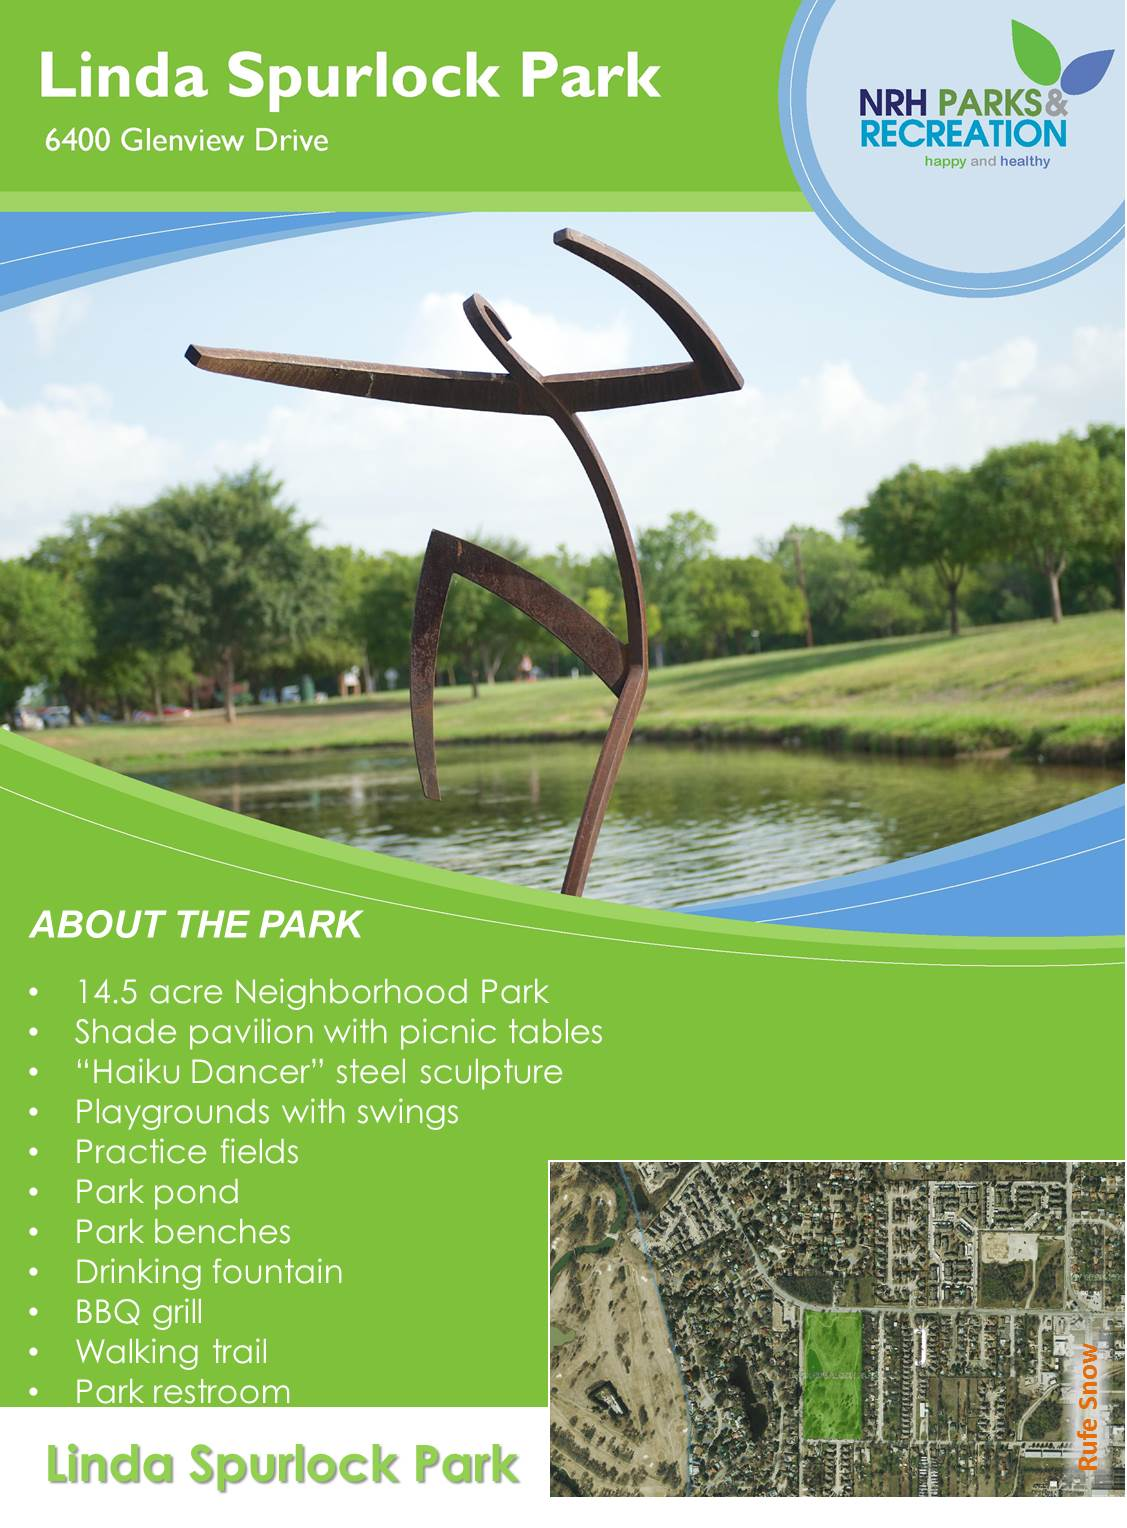 Linda Spurlock Park Fact Sheet.jpg